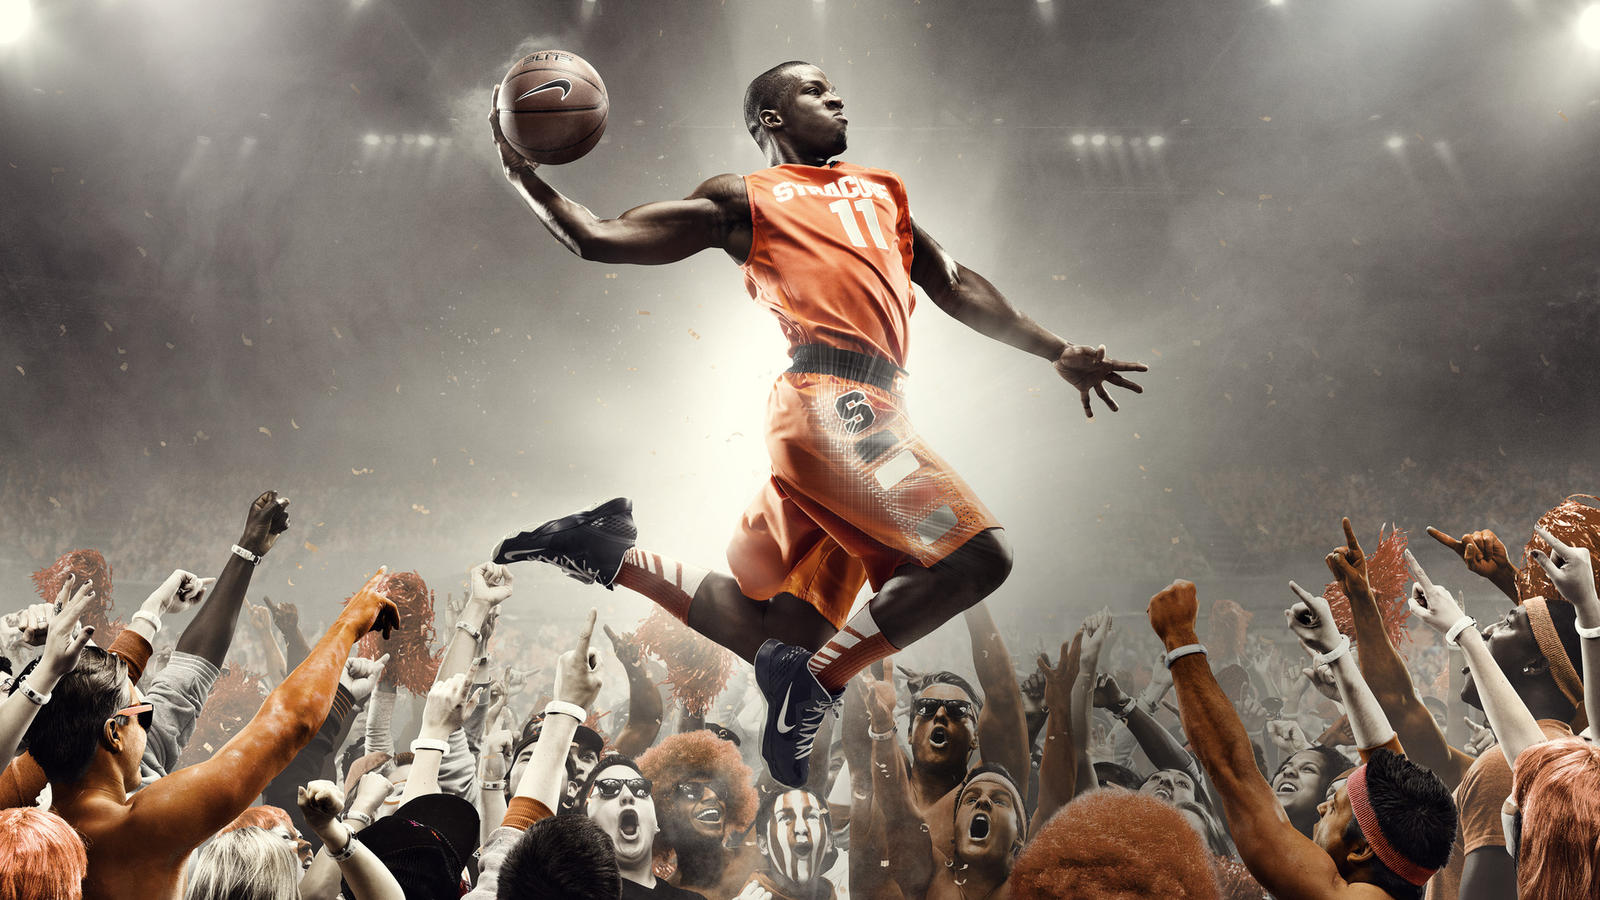 Hd Sports Wallpaper For Android: NIKE, Inc. Salutes Men's Tournament Teams Marching Toward